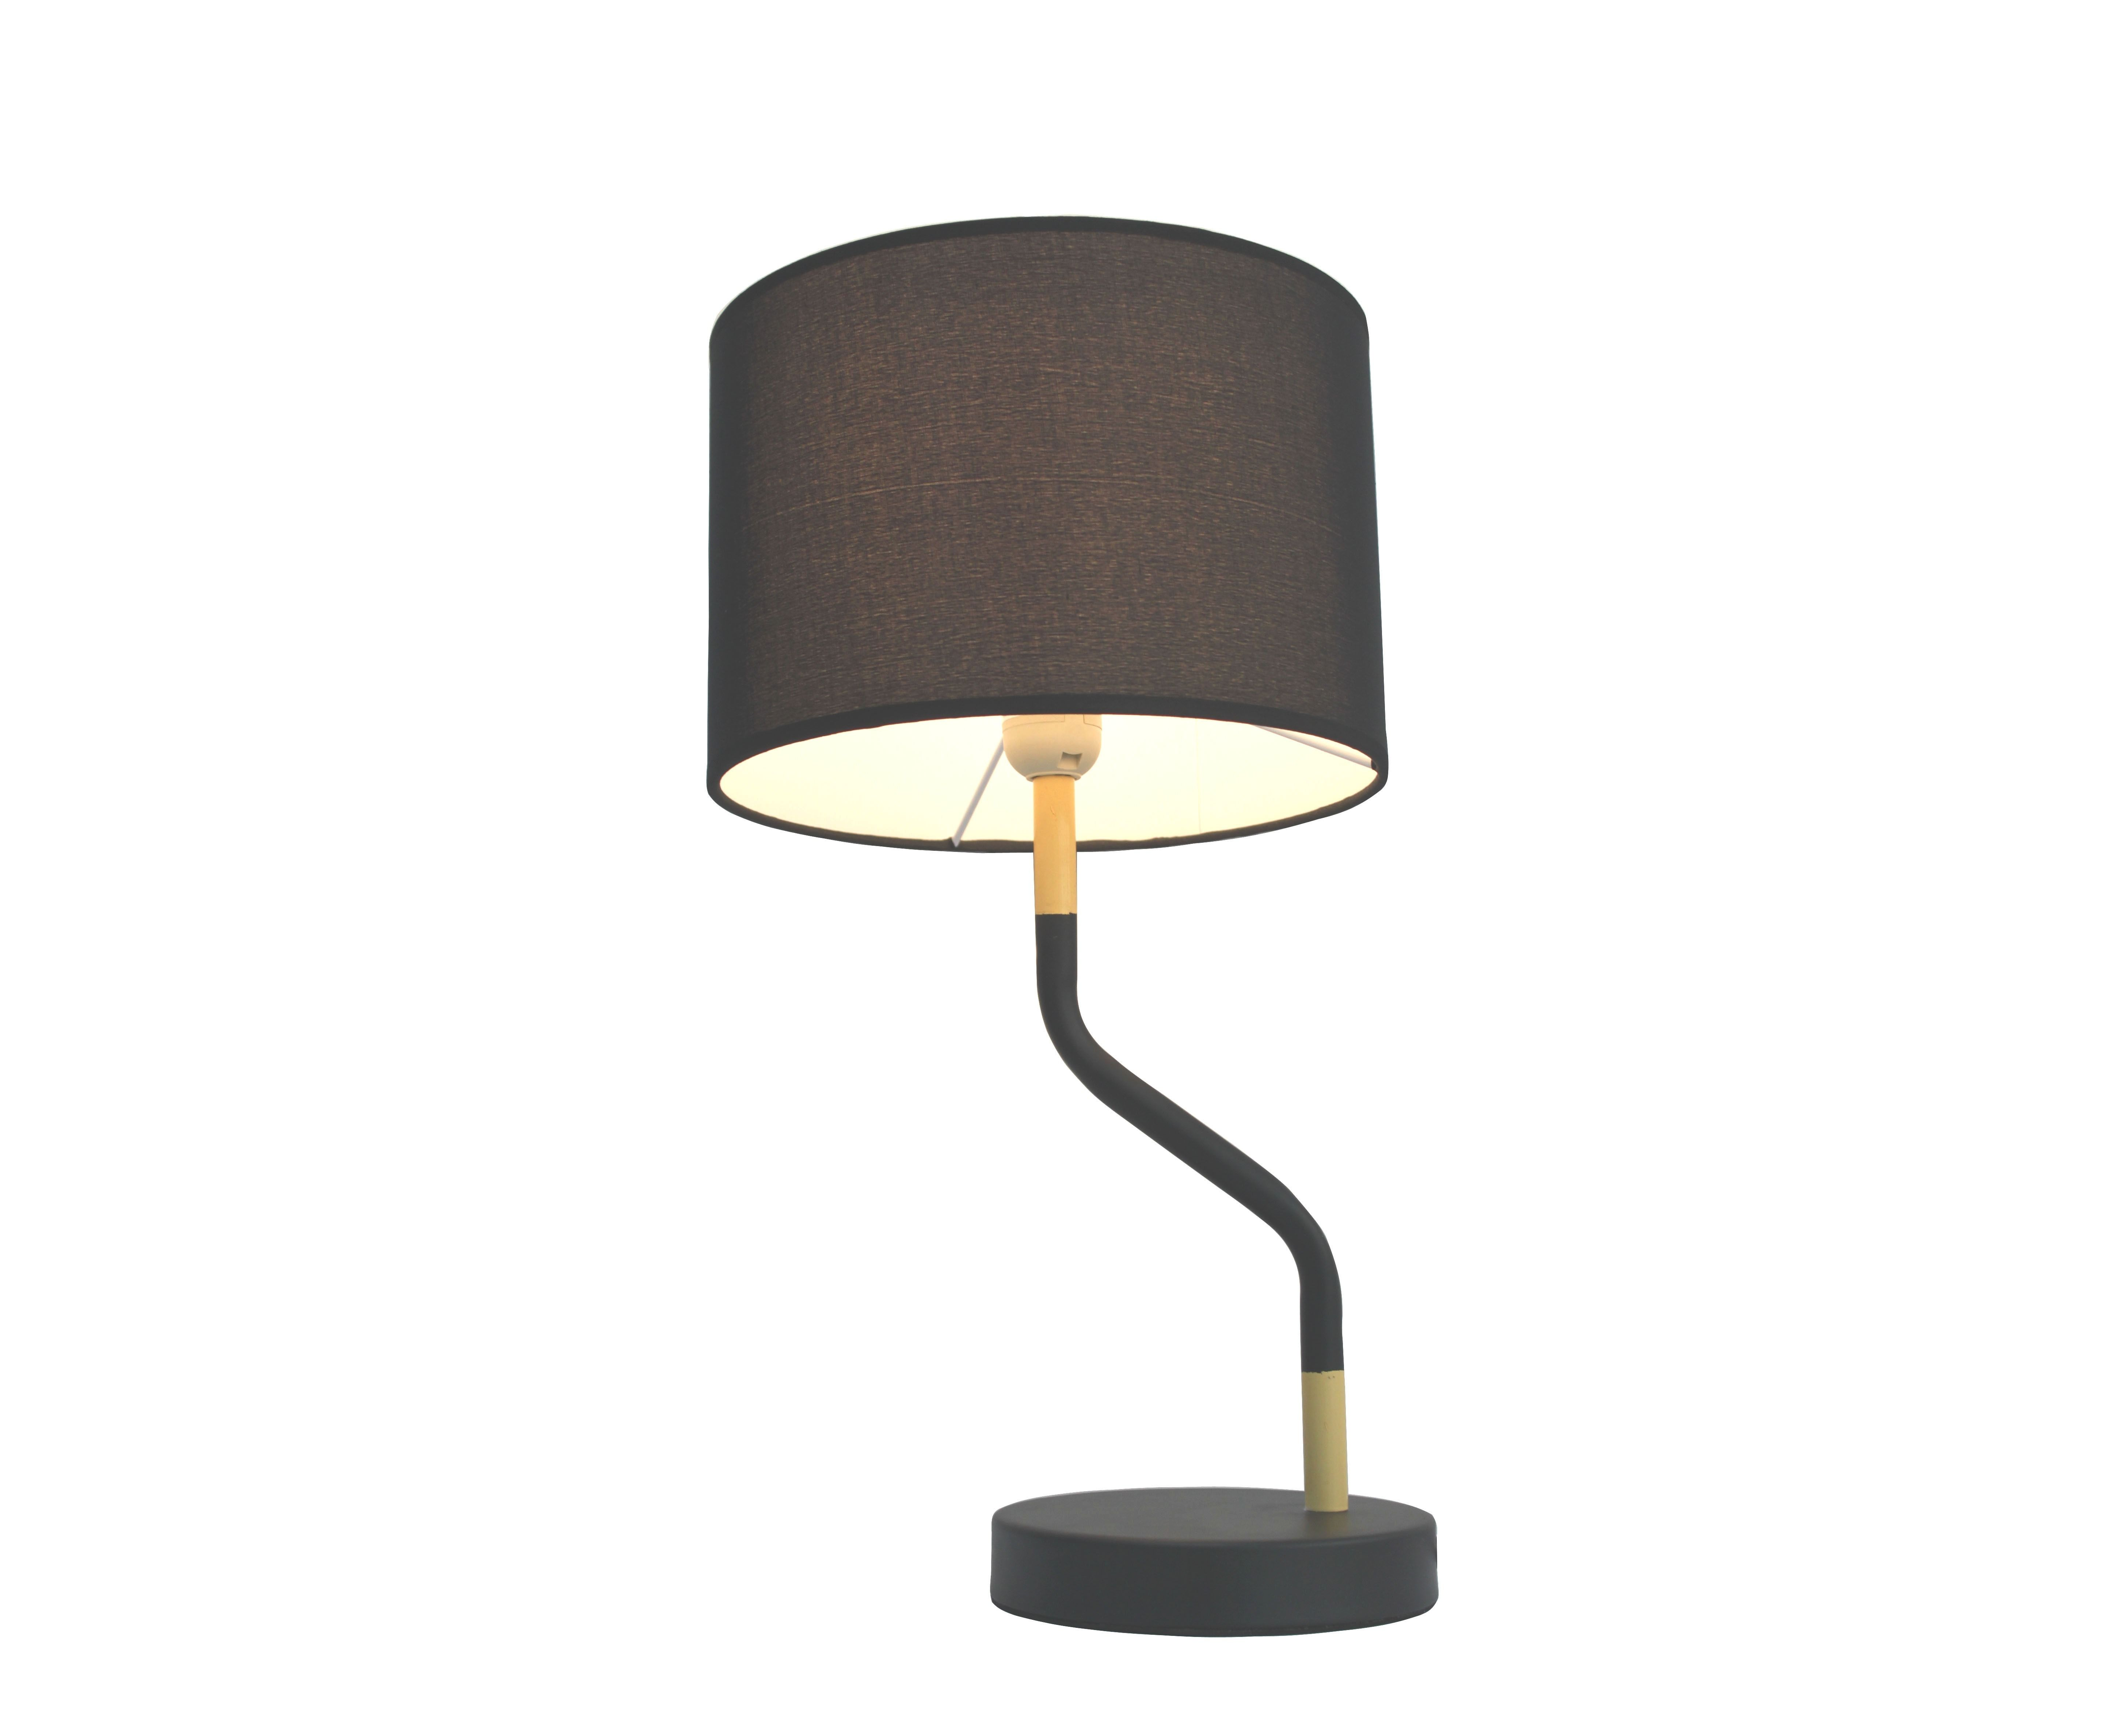 Get Your Apothecary Table Lamp Black Shade From Catch Au Now